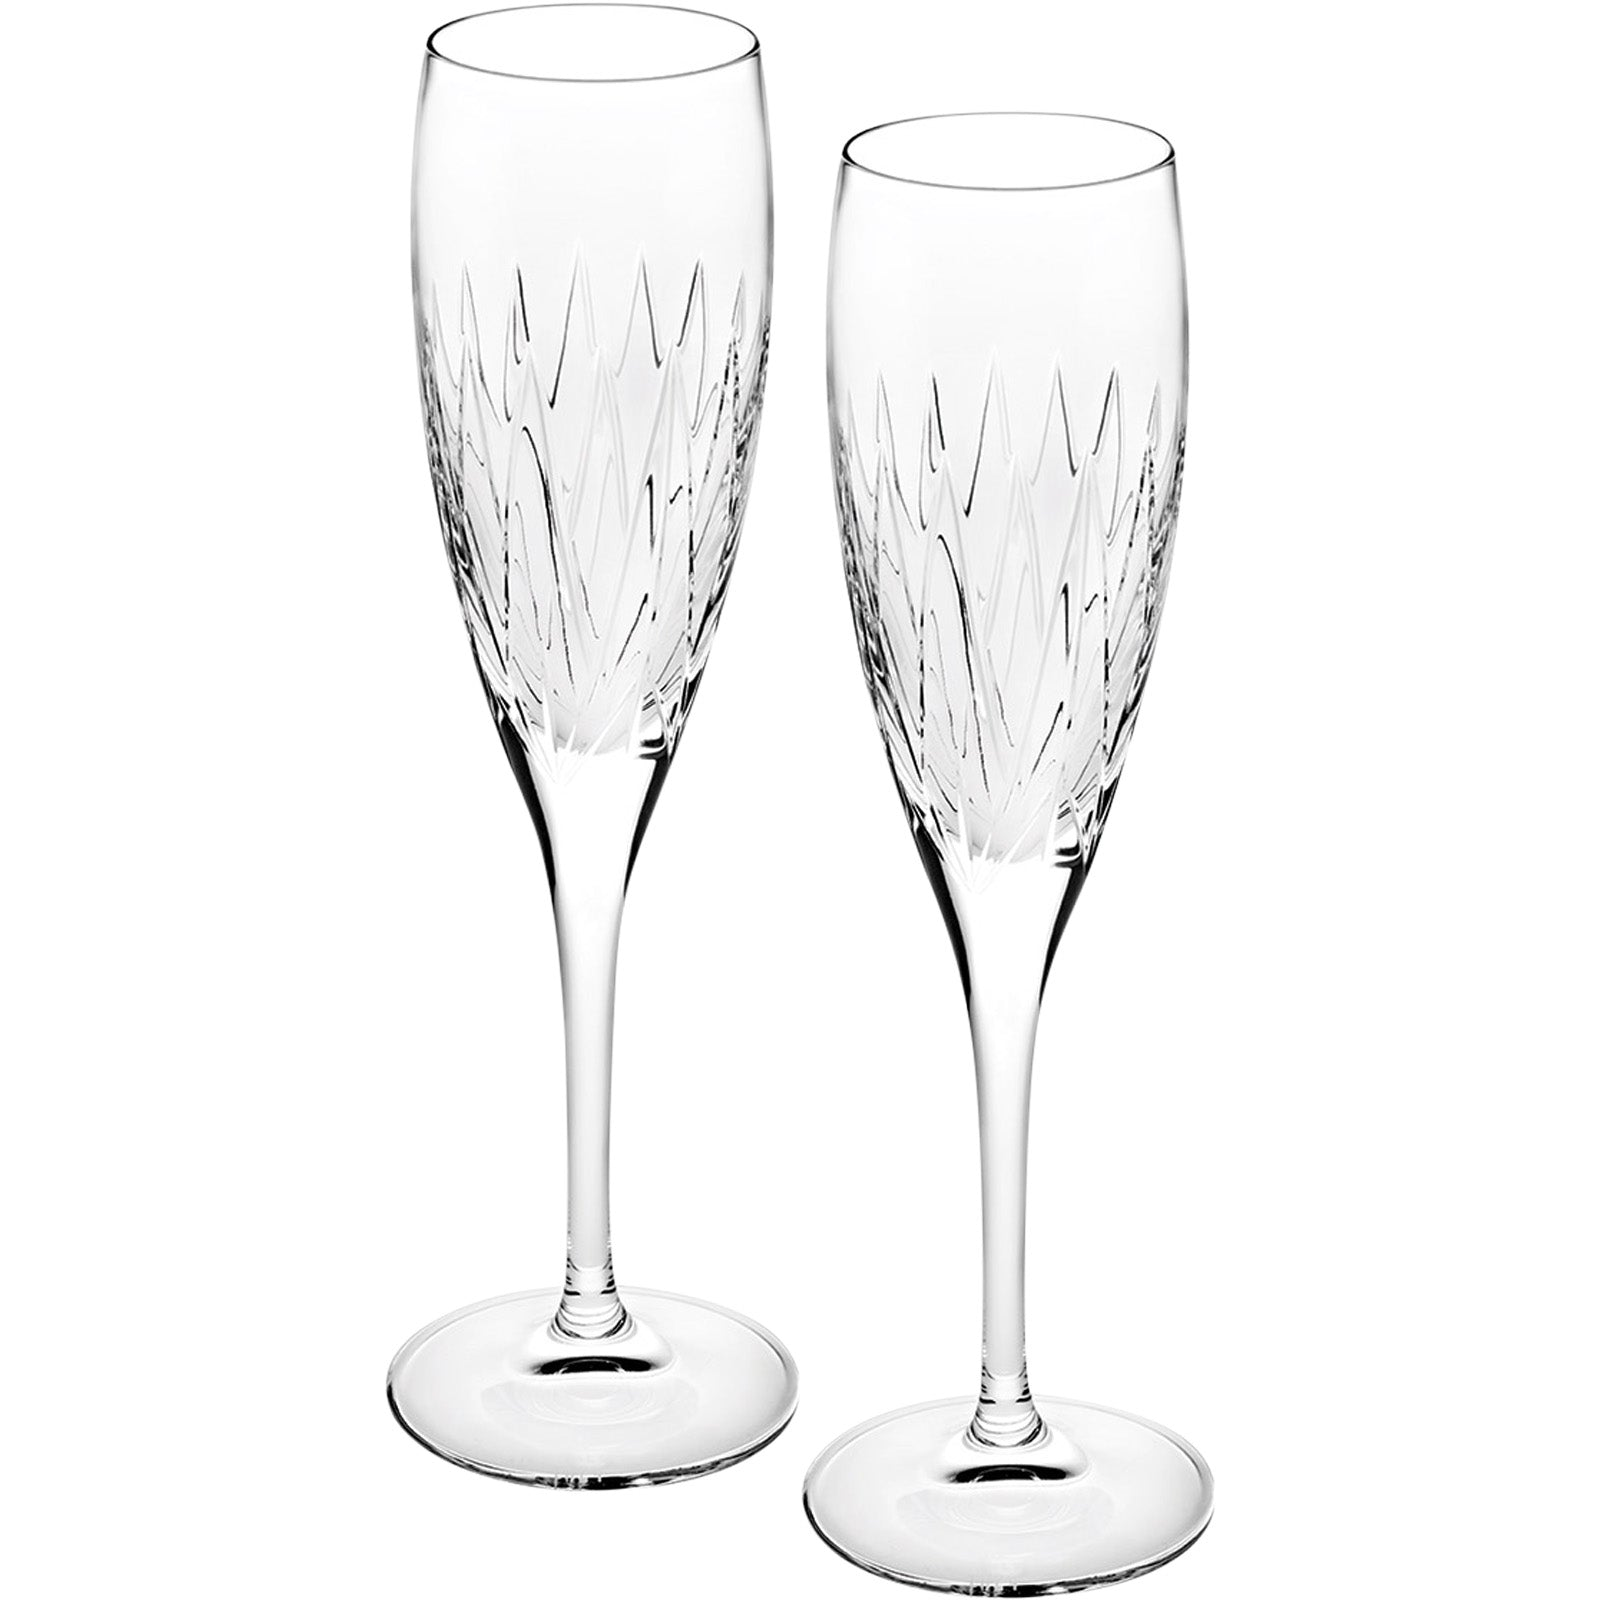 Set Of 2 Astro Champagne Flutes by VISTA ALEGRE on LuxDeco.com